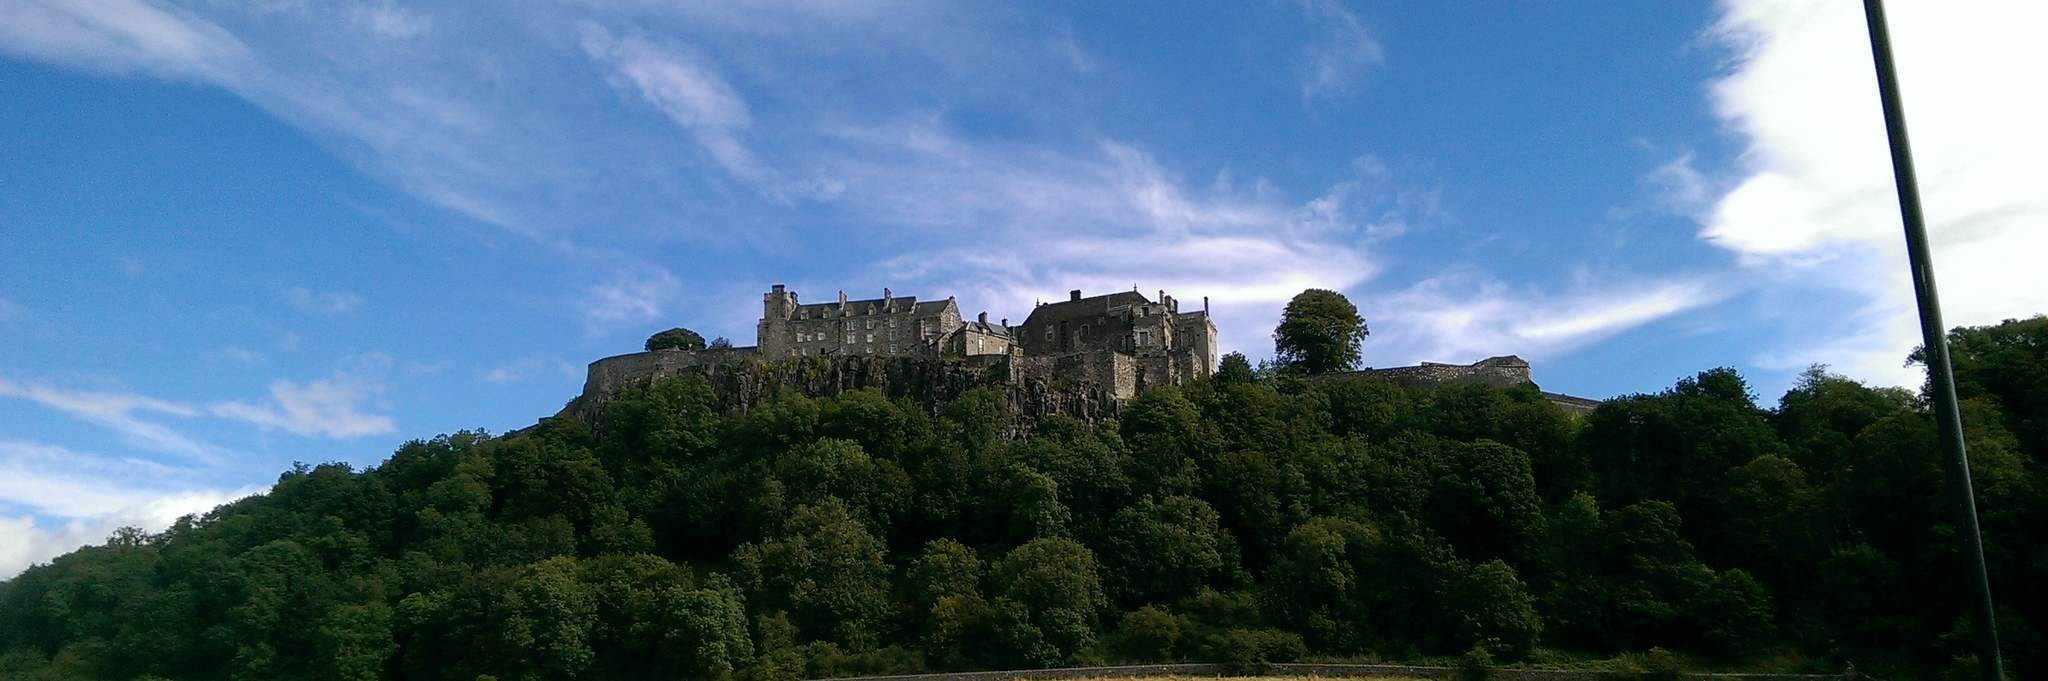 Castles in Argyll, The Isles, Loch Lomond, Stirling and The Forth Valley